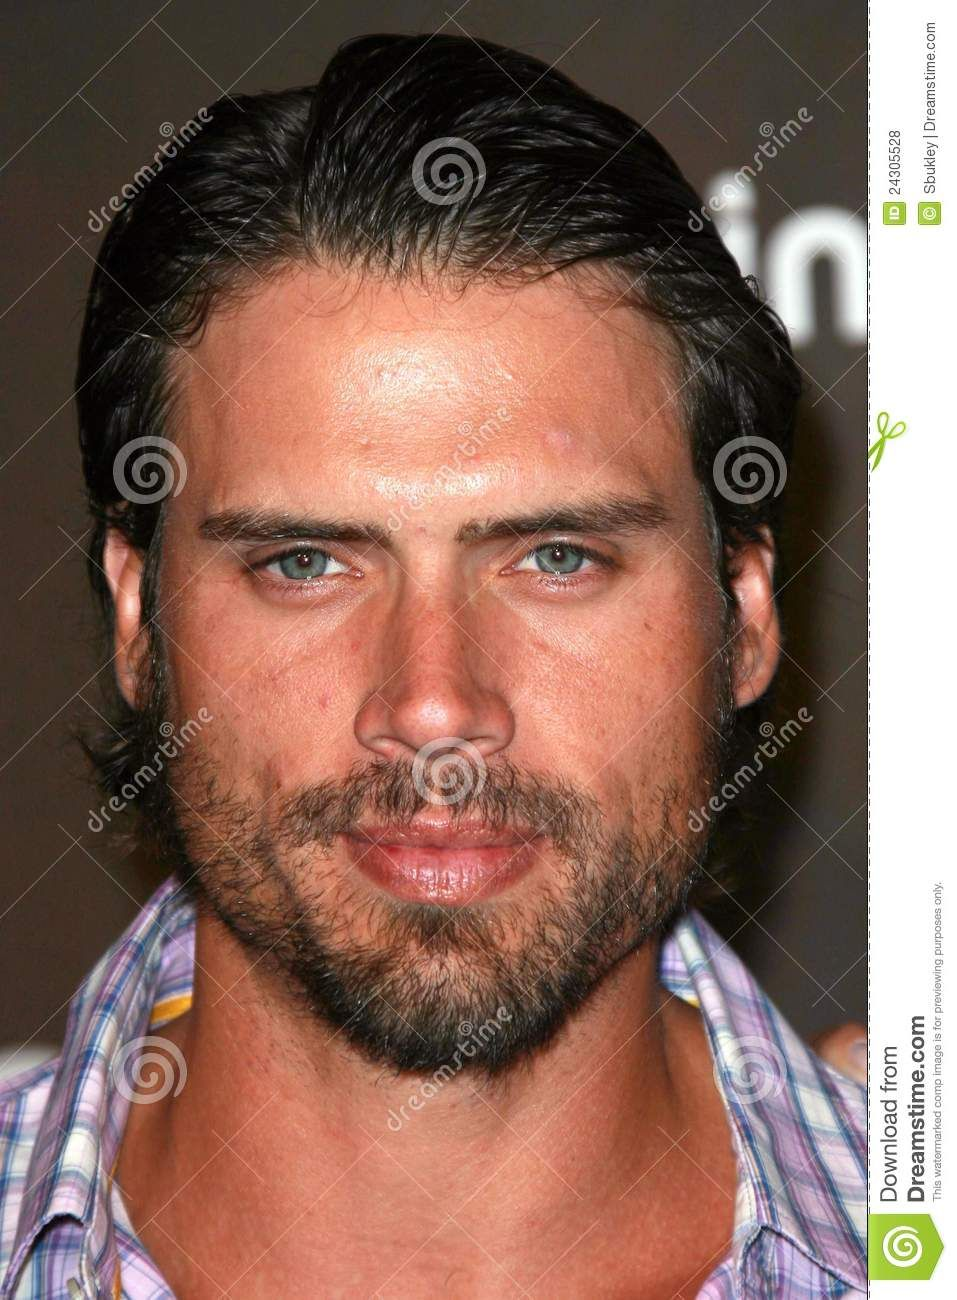 joshua morrow agejoshua morrow age, joshua morrow wife, joshua morrow net worth, joshua morrow family, joshua morrow twitter, joshua morrow parents, joshua morrow bio, joshua morrow young, joshua morrow height, joshua morrow band, joshua morrow married, joshua morrow instagram, joshua morrow facebook, joshua morrow young and restless, joshua morrow daughter, joshua morrow actor, joshua morrow spouse, joshua morrow movies, joshua morrow oklahoma, joshua morrow home